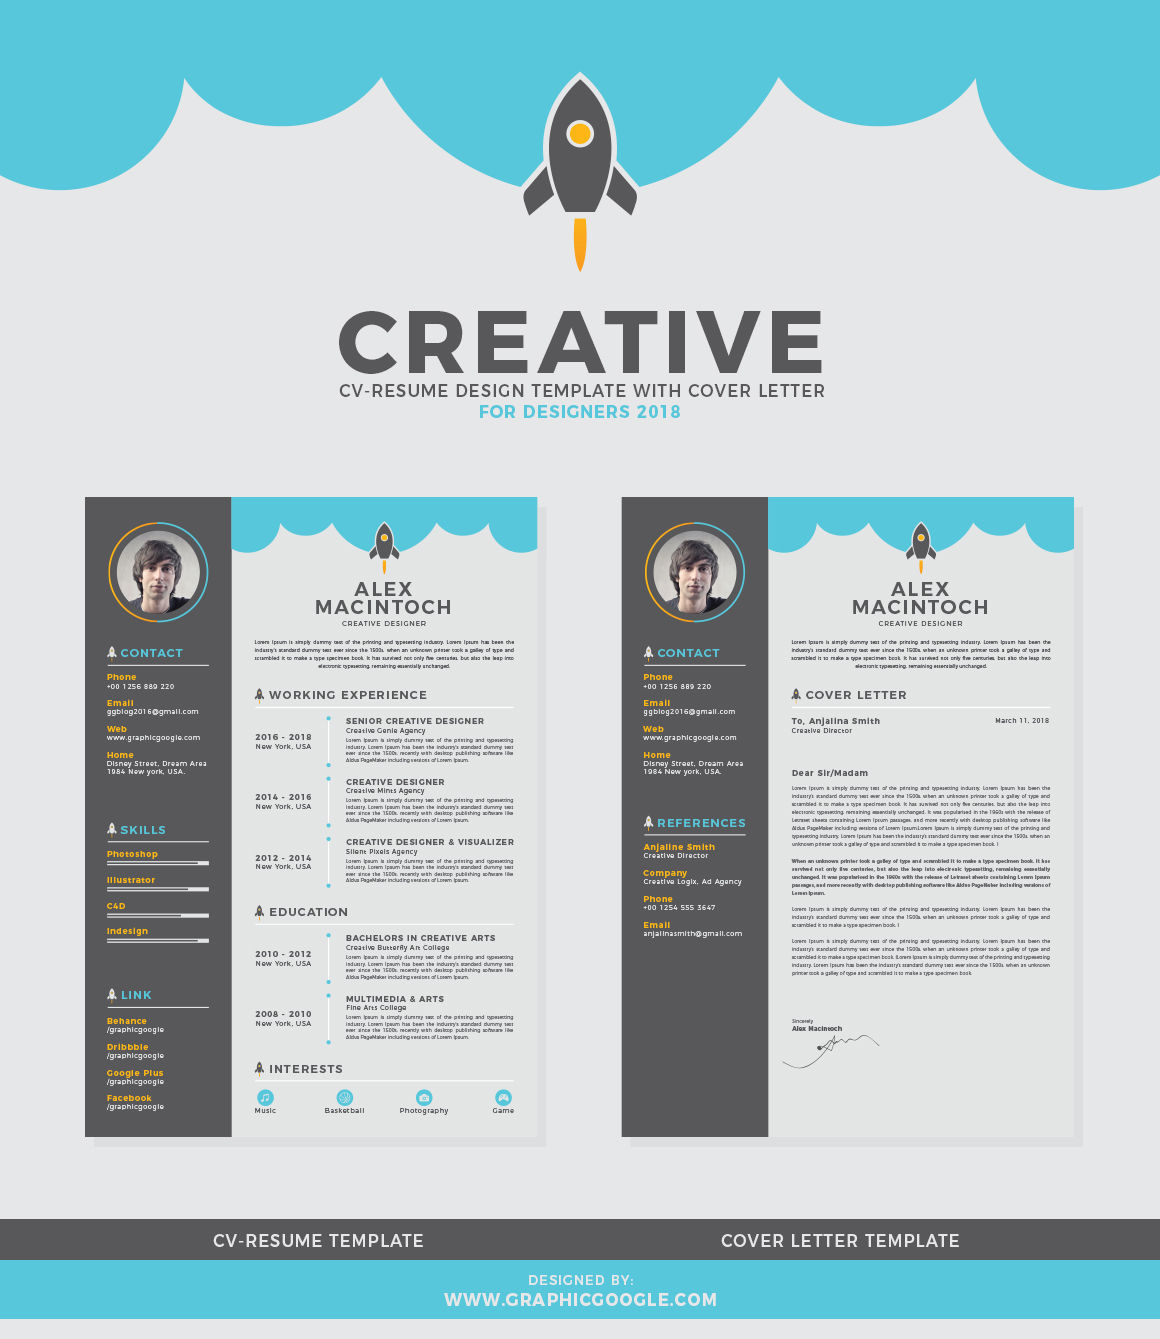 Free-Creative-CV-Resume-Design-Template-With-Cover-Letter-For-Designers-2018